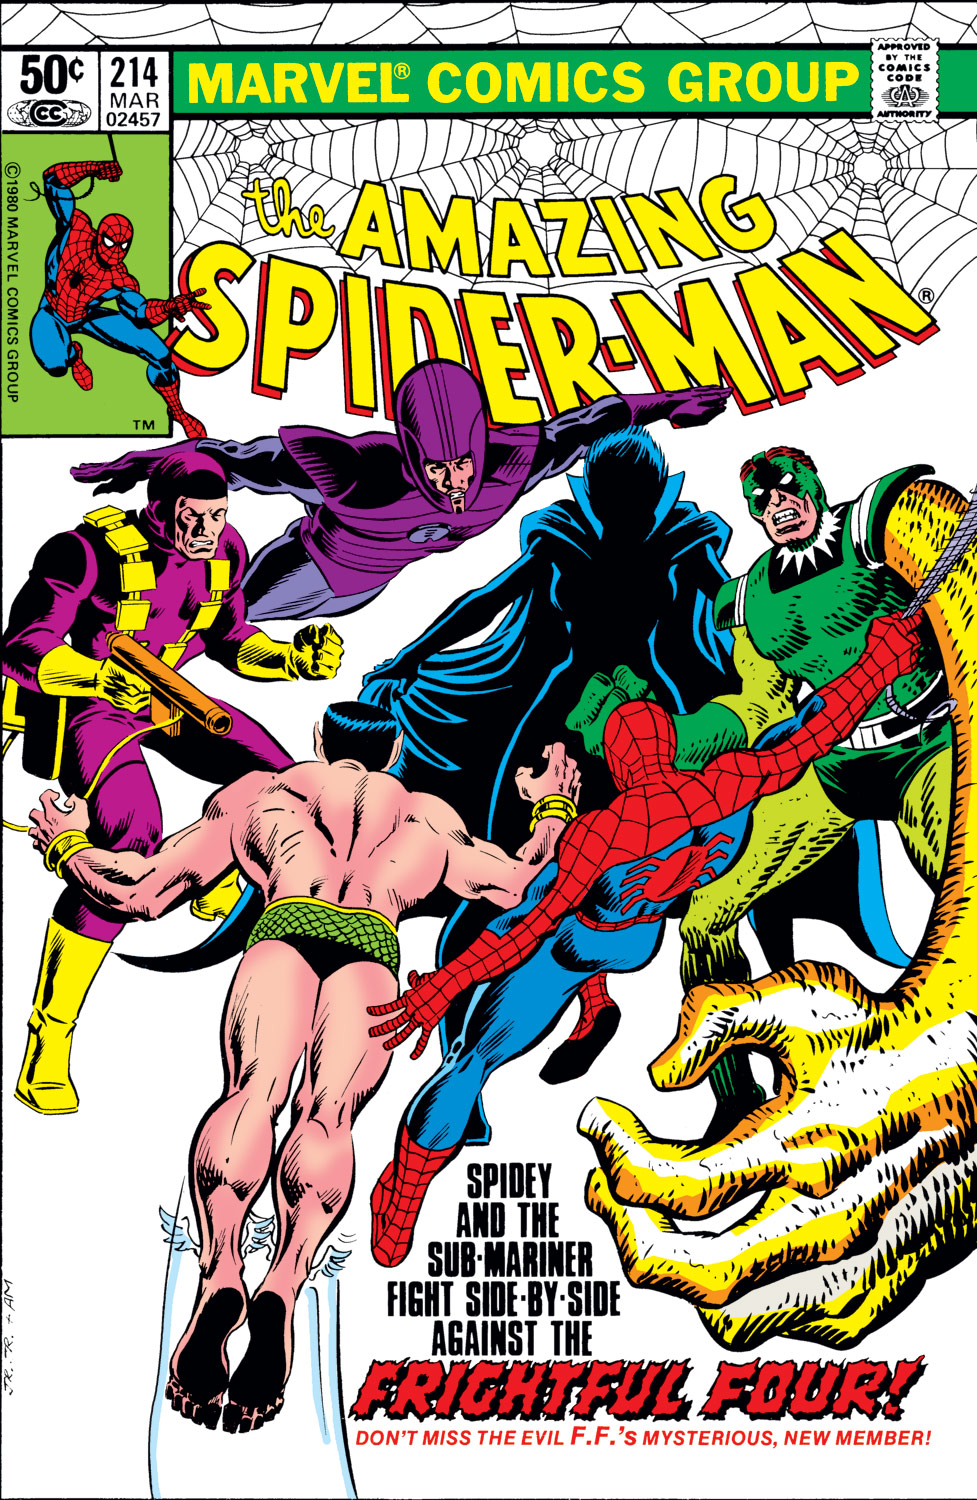 The Amazing Spider-Man (1963) #214